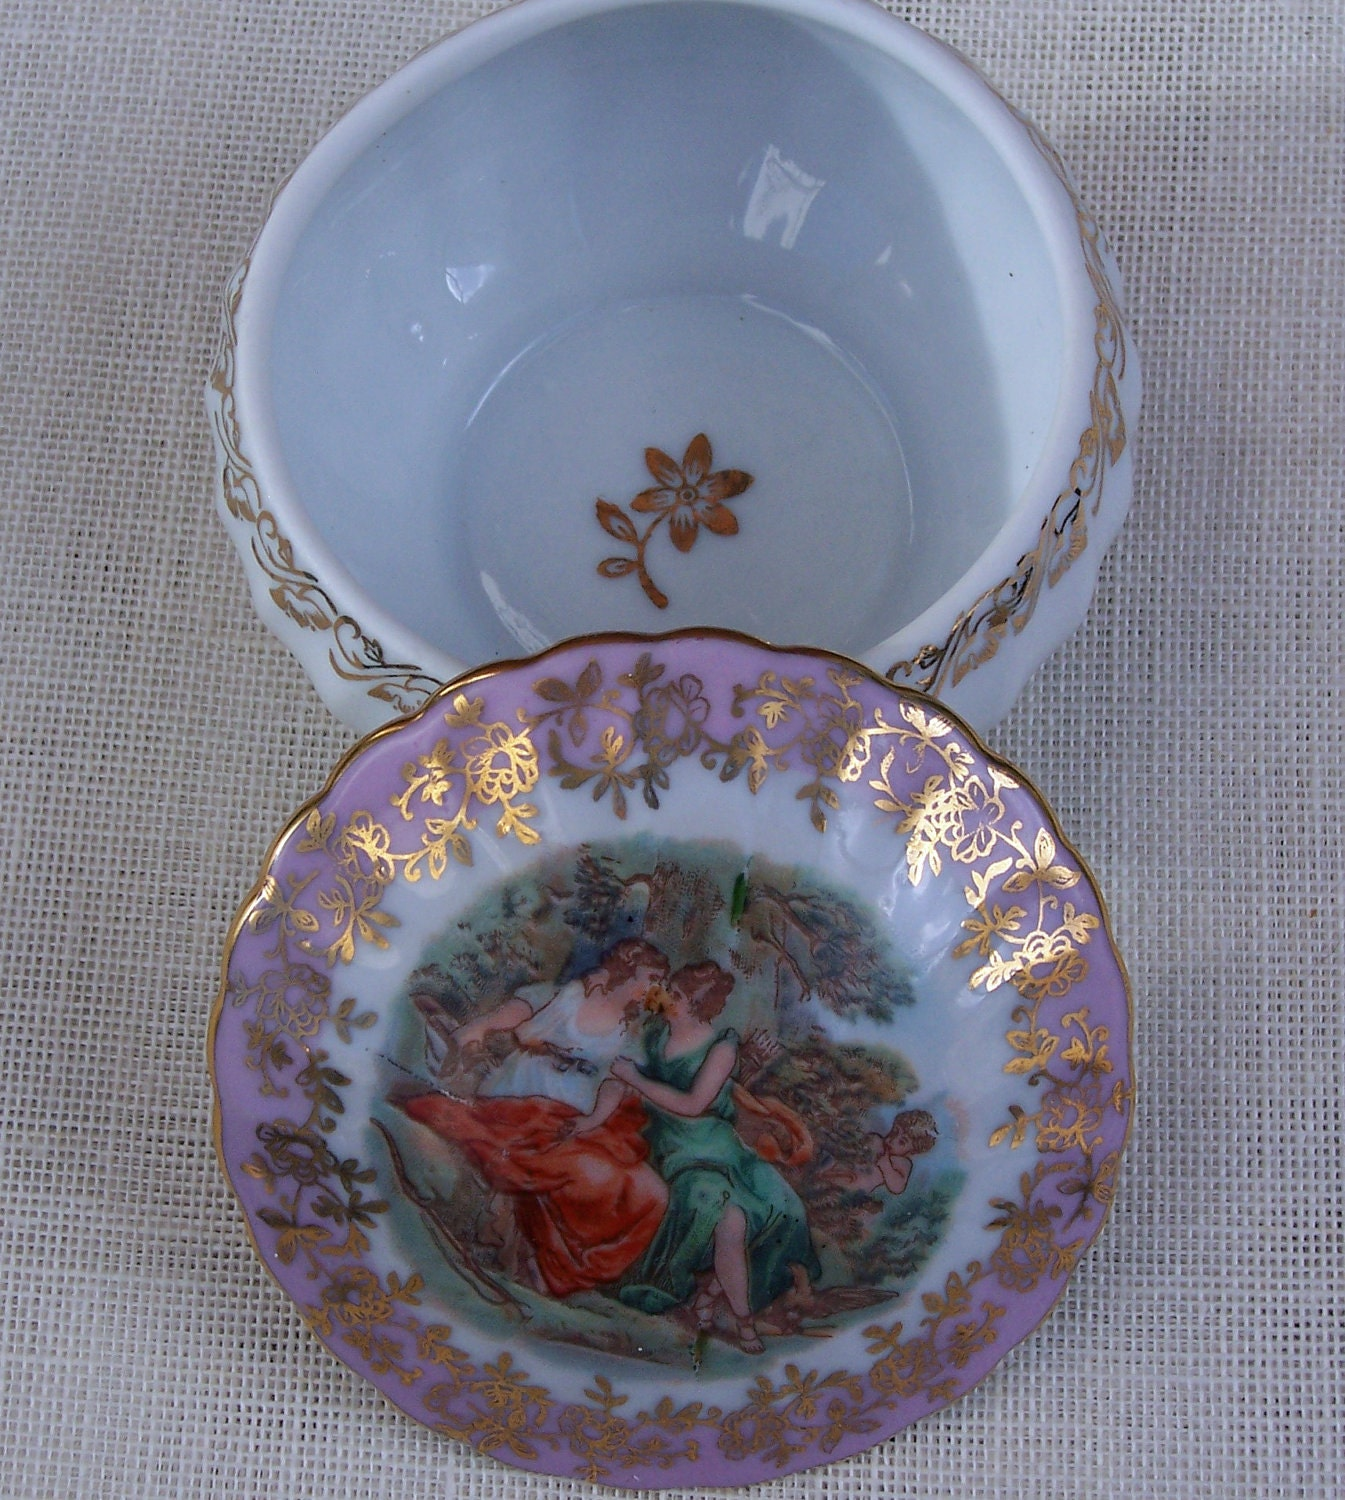 Vintage German trinket, dresser box or powder jar with romantic scene